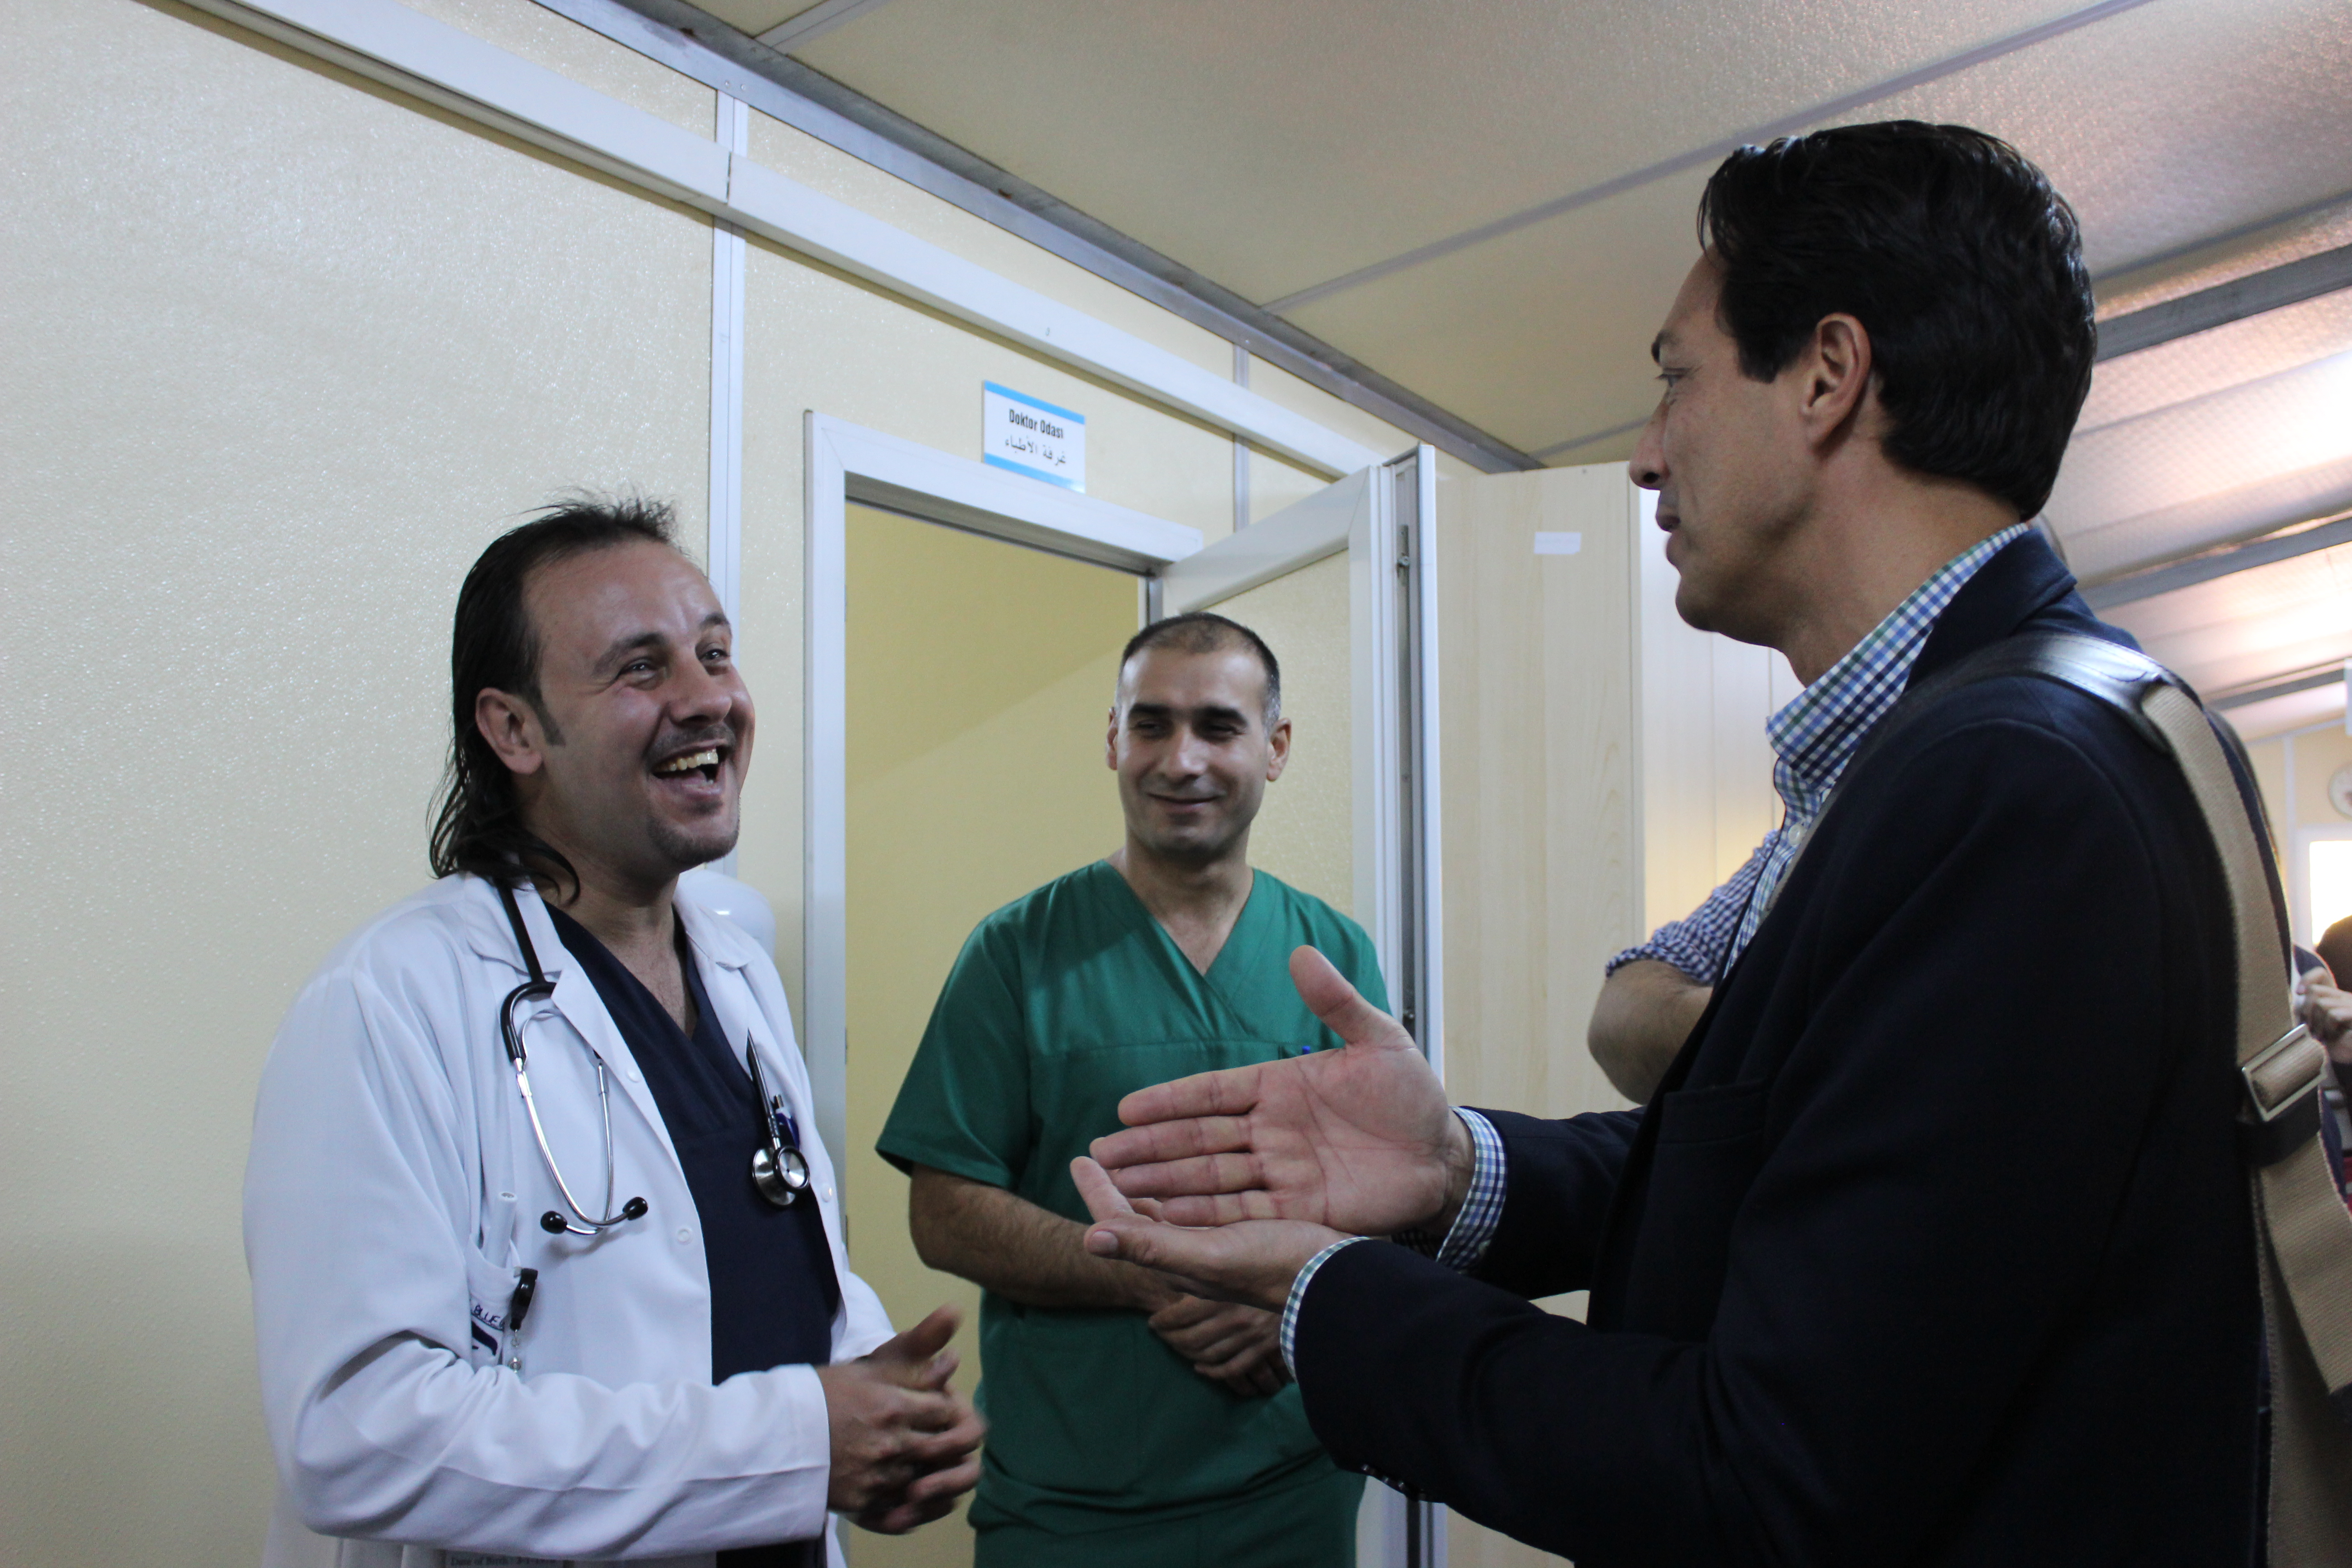 Vice Secretary General, Sid Peruvemba, visits a Malteser International medical facility for Syrian refugees in Kilis, Turkey.